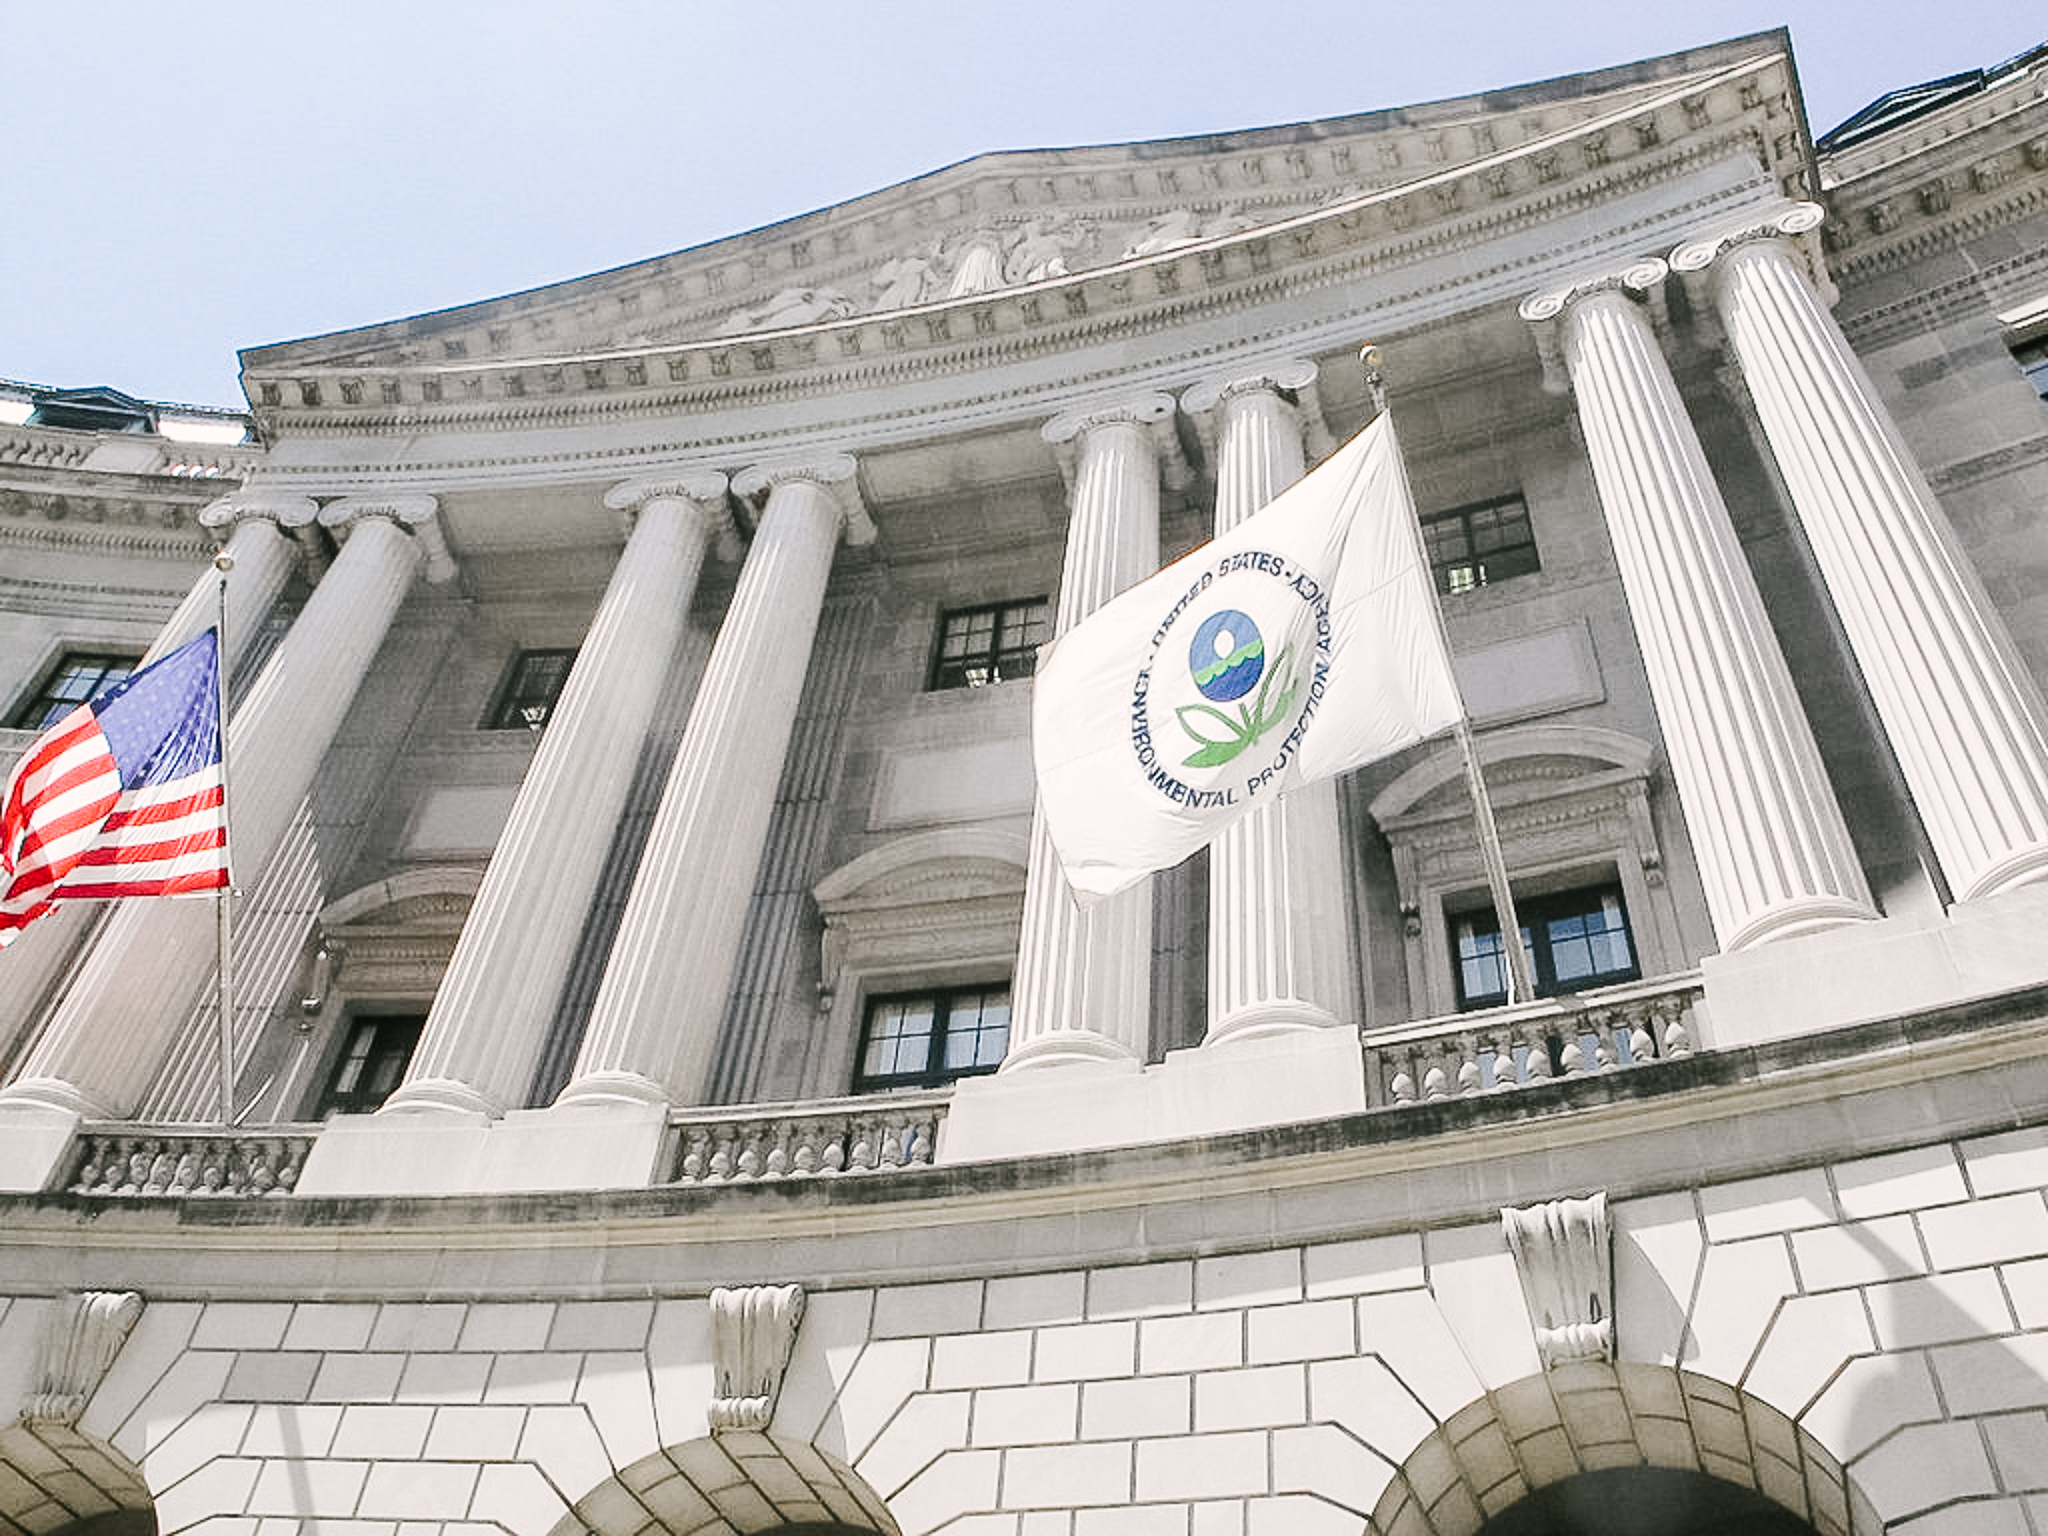 Image of the Environmental Protection Agency building, courtesy of the Natural Resources Defense Council.